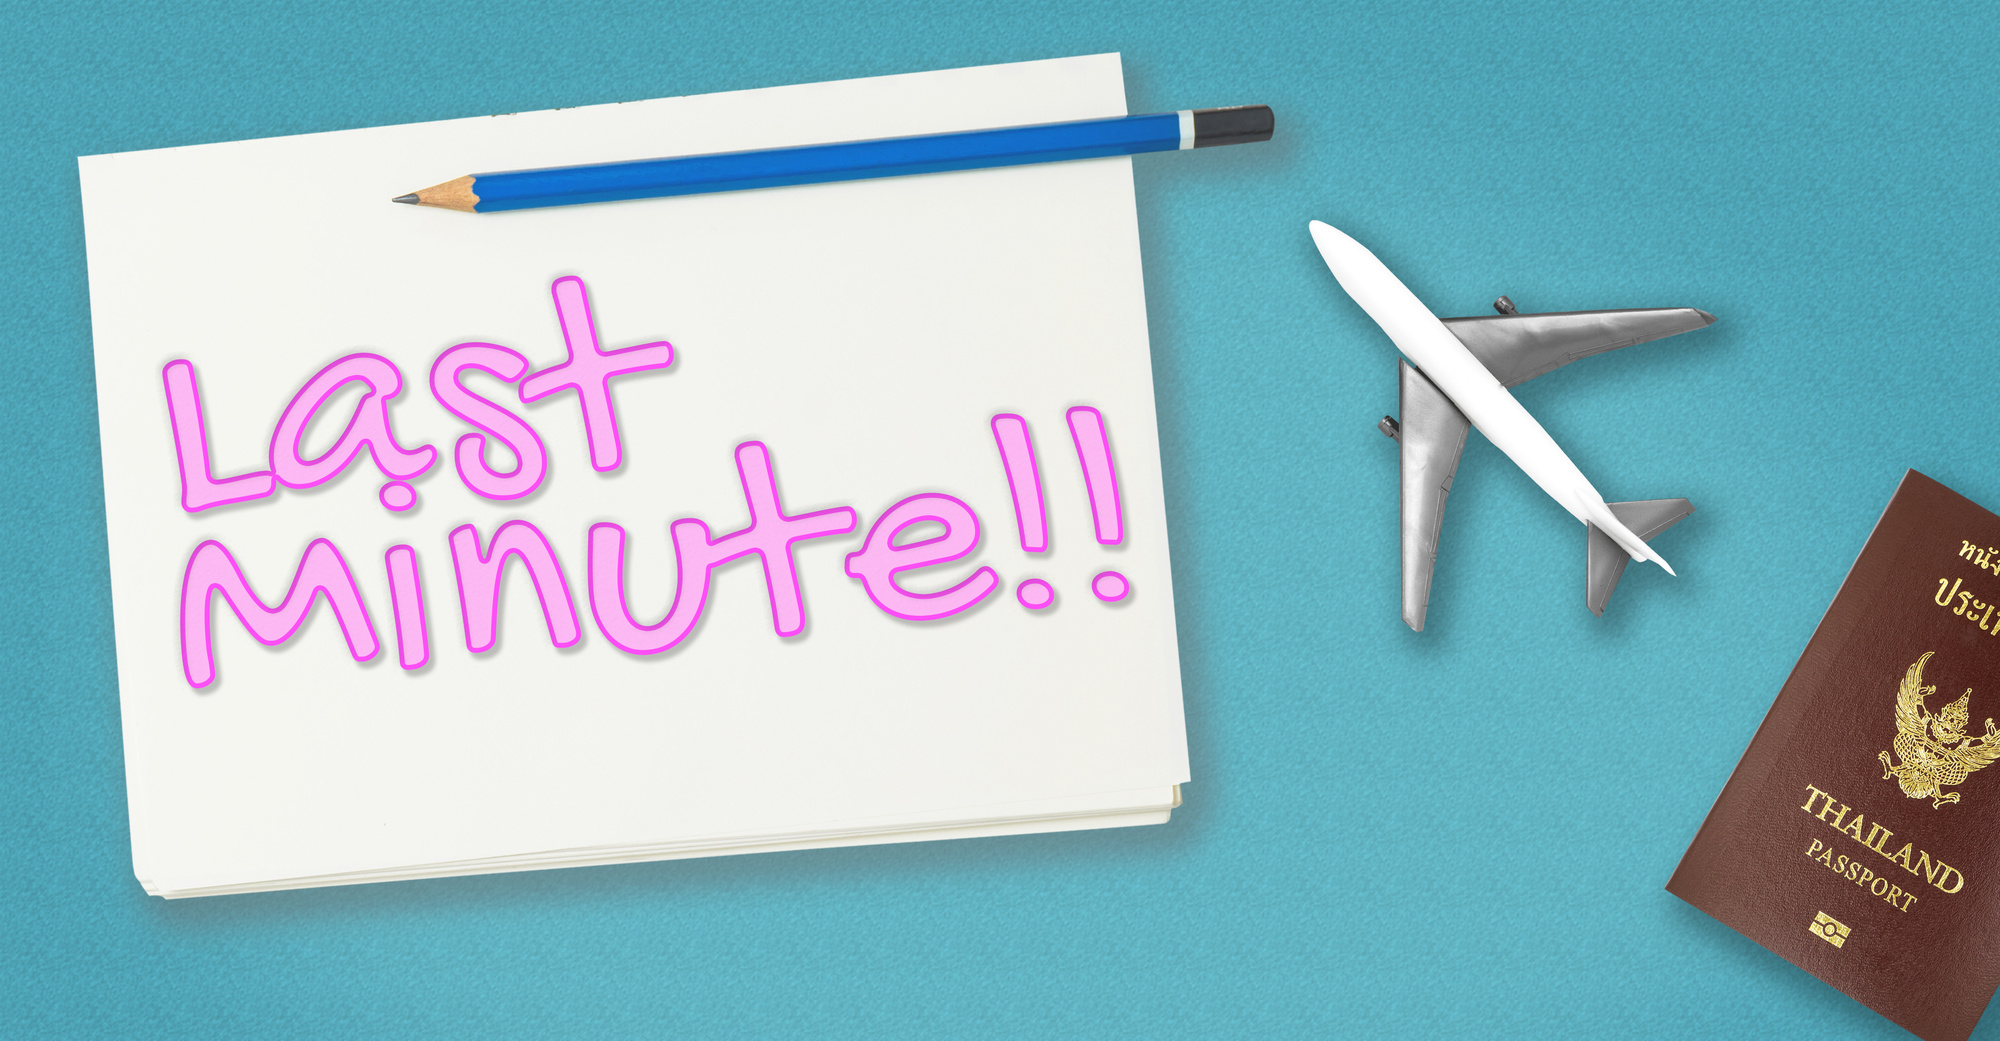 Top 10 Savvy Tips to Find the Best Last Minute Travel